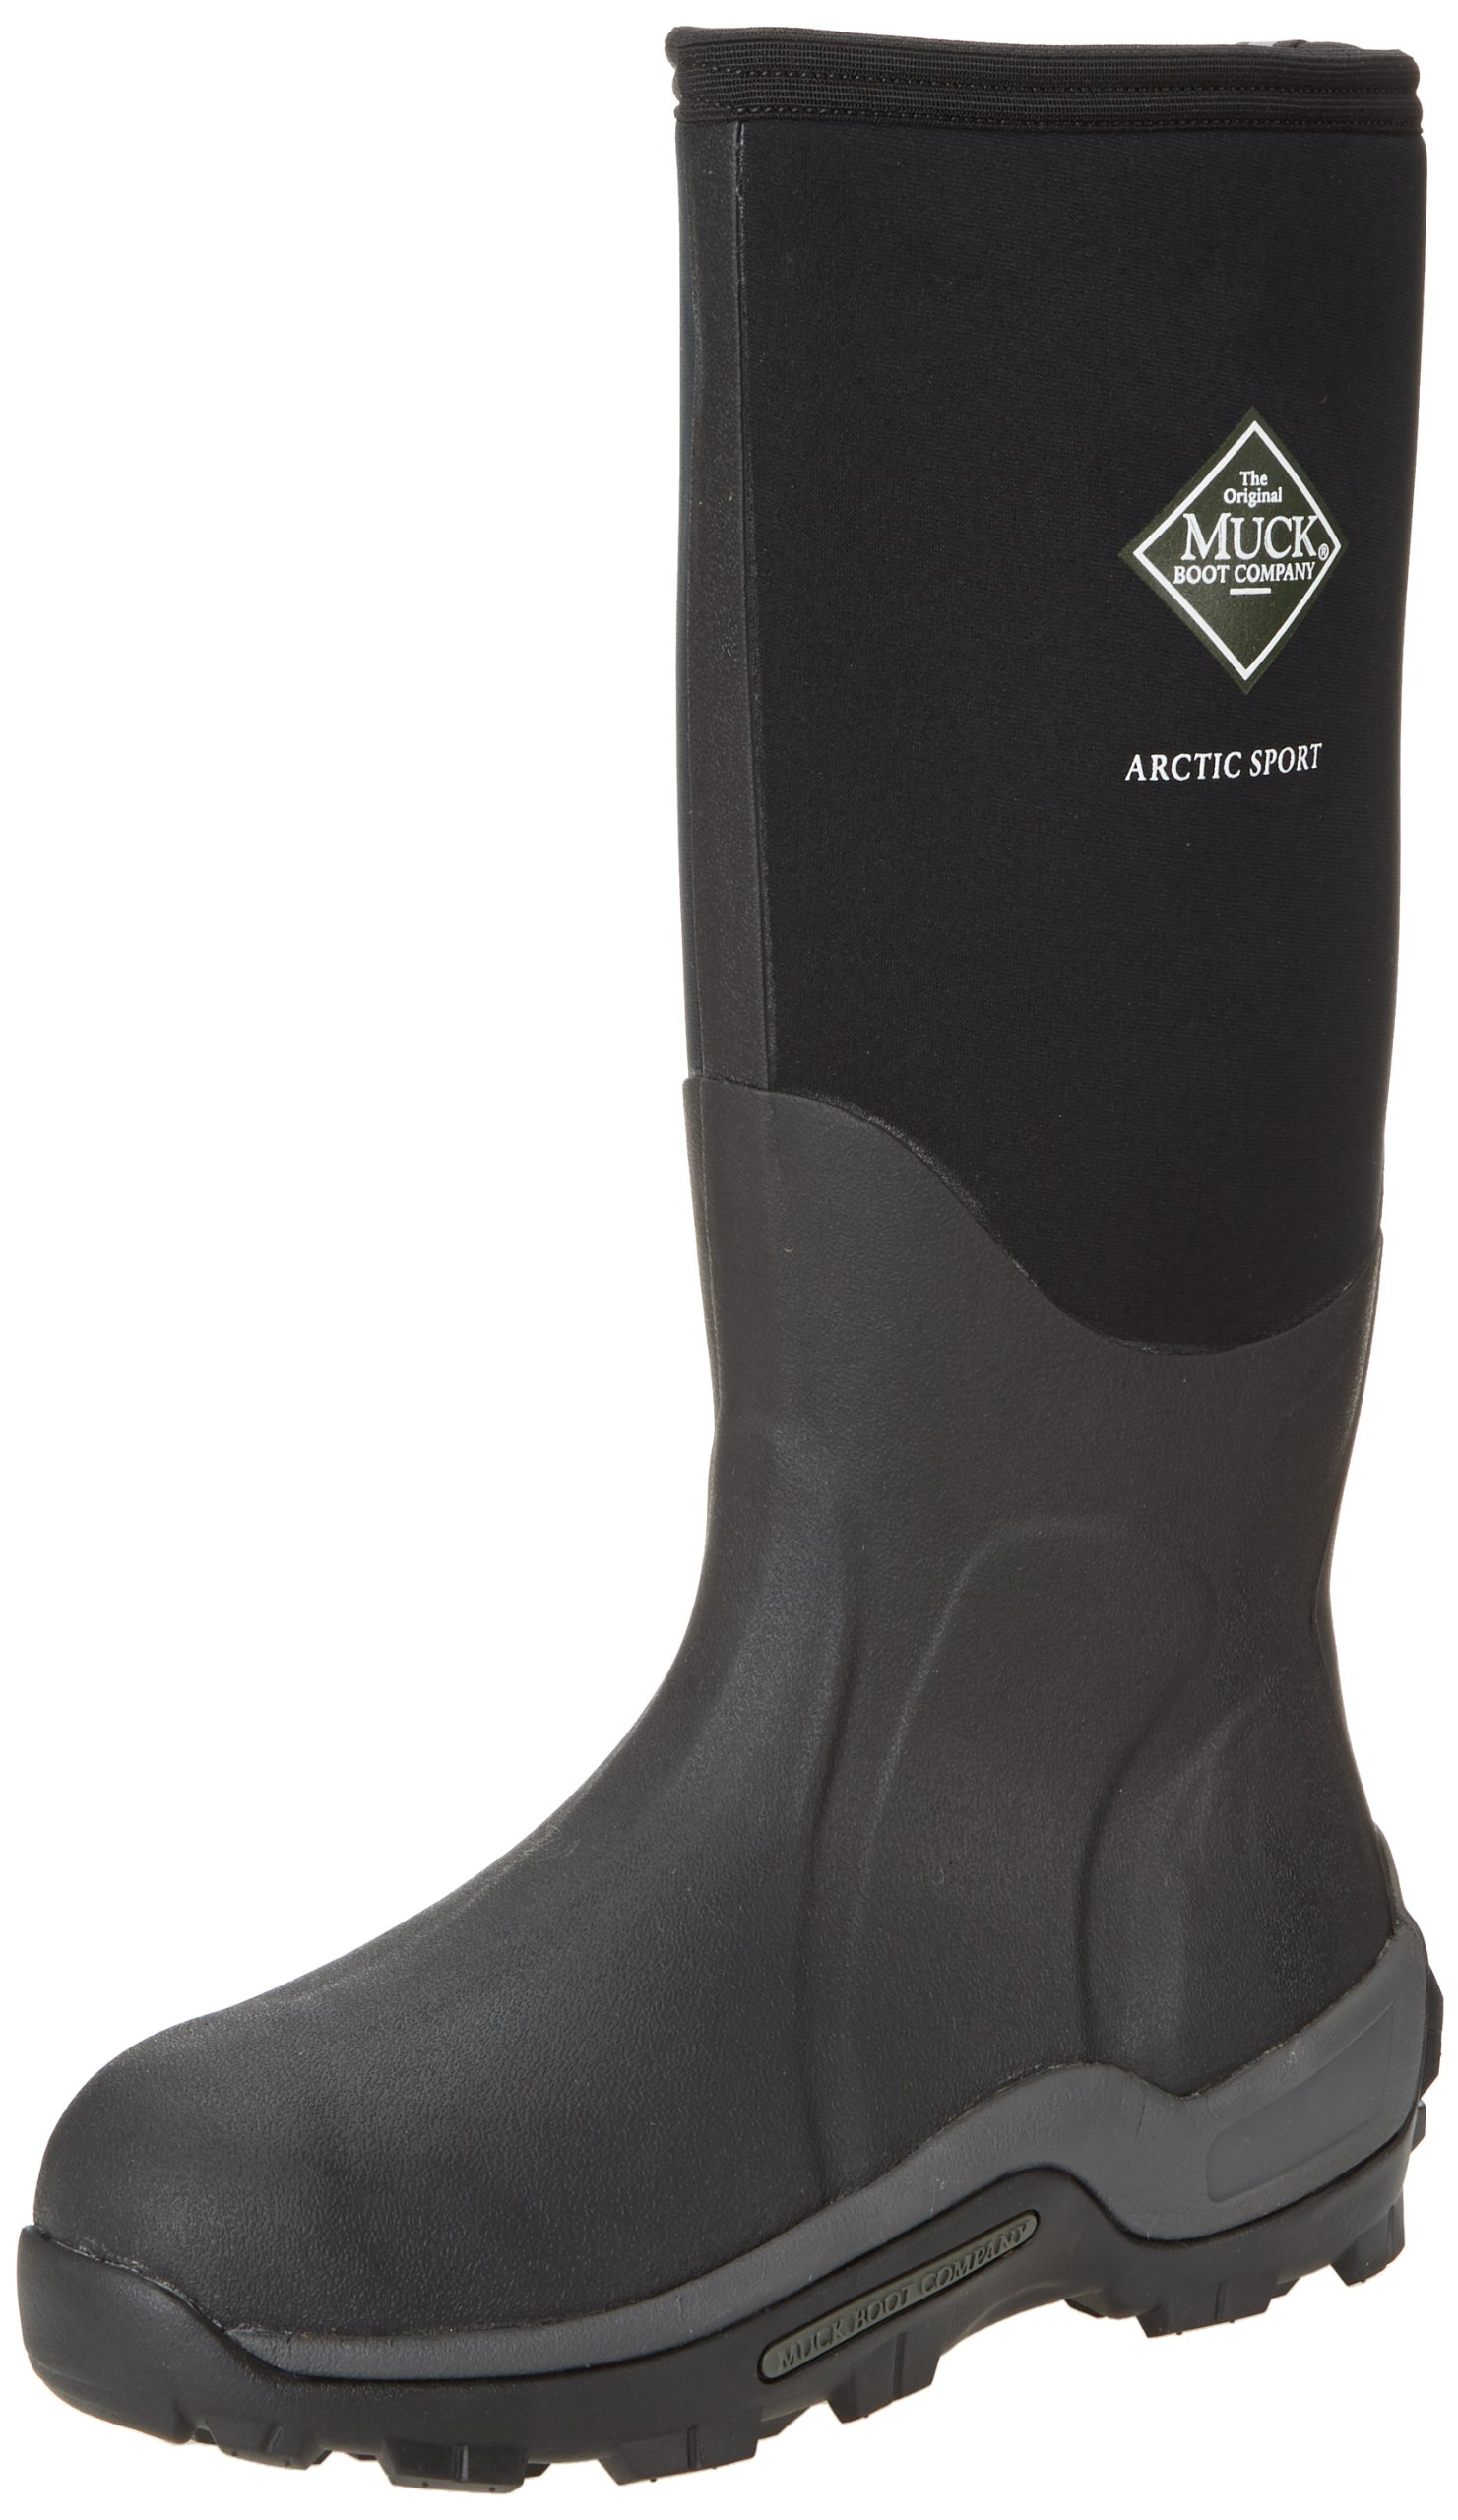 The Original MuckBoots Adult Arctic Sport